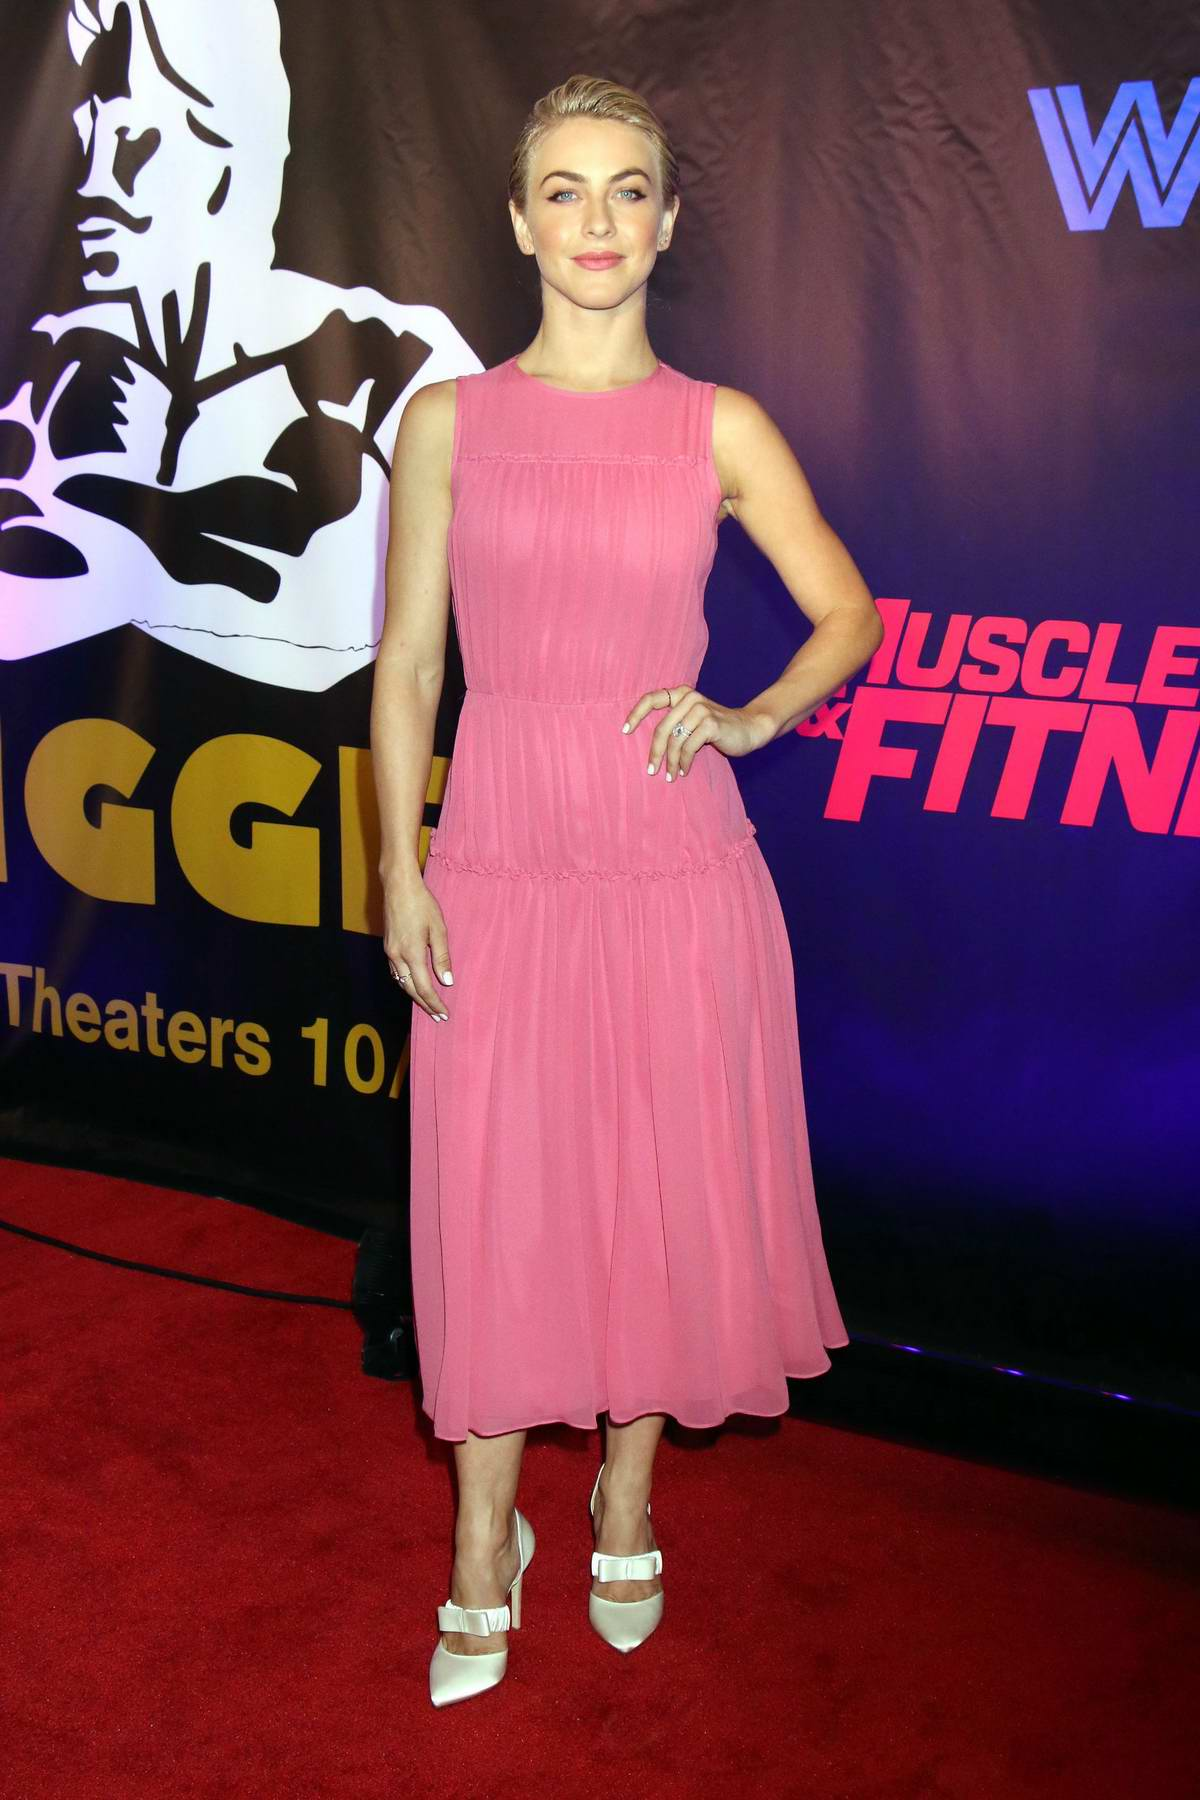 Julianne Hough attends Freestyle Releasing's World Premiere of 'Bigger' at the Orleans Arena in Las Vegas, Nevada